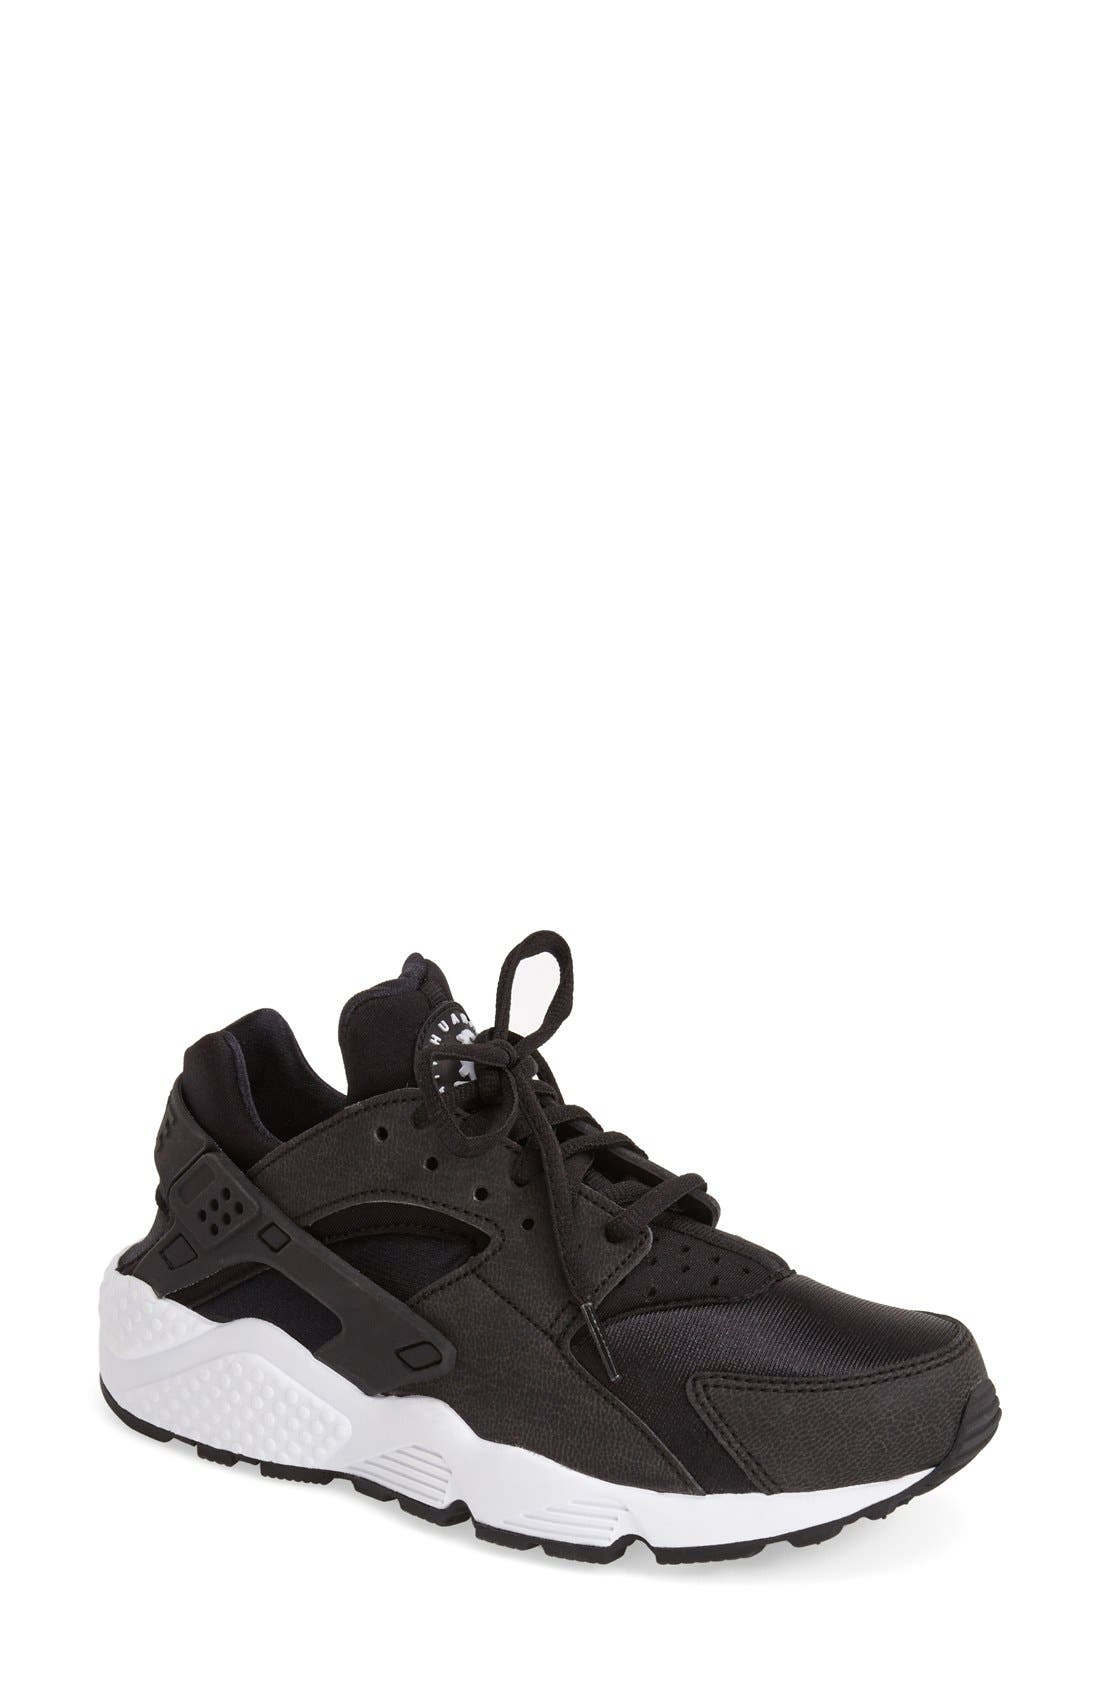 'Air Huarache' Sneaker,                             Main thumbnail 1, color,                             Black/ White